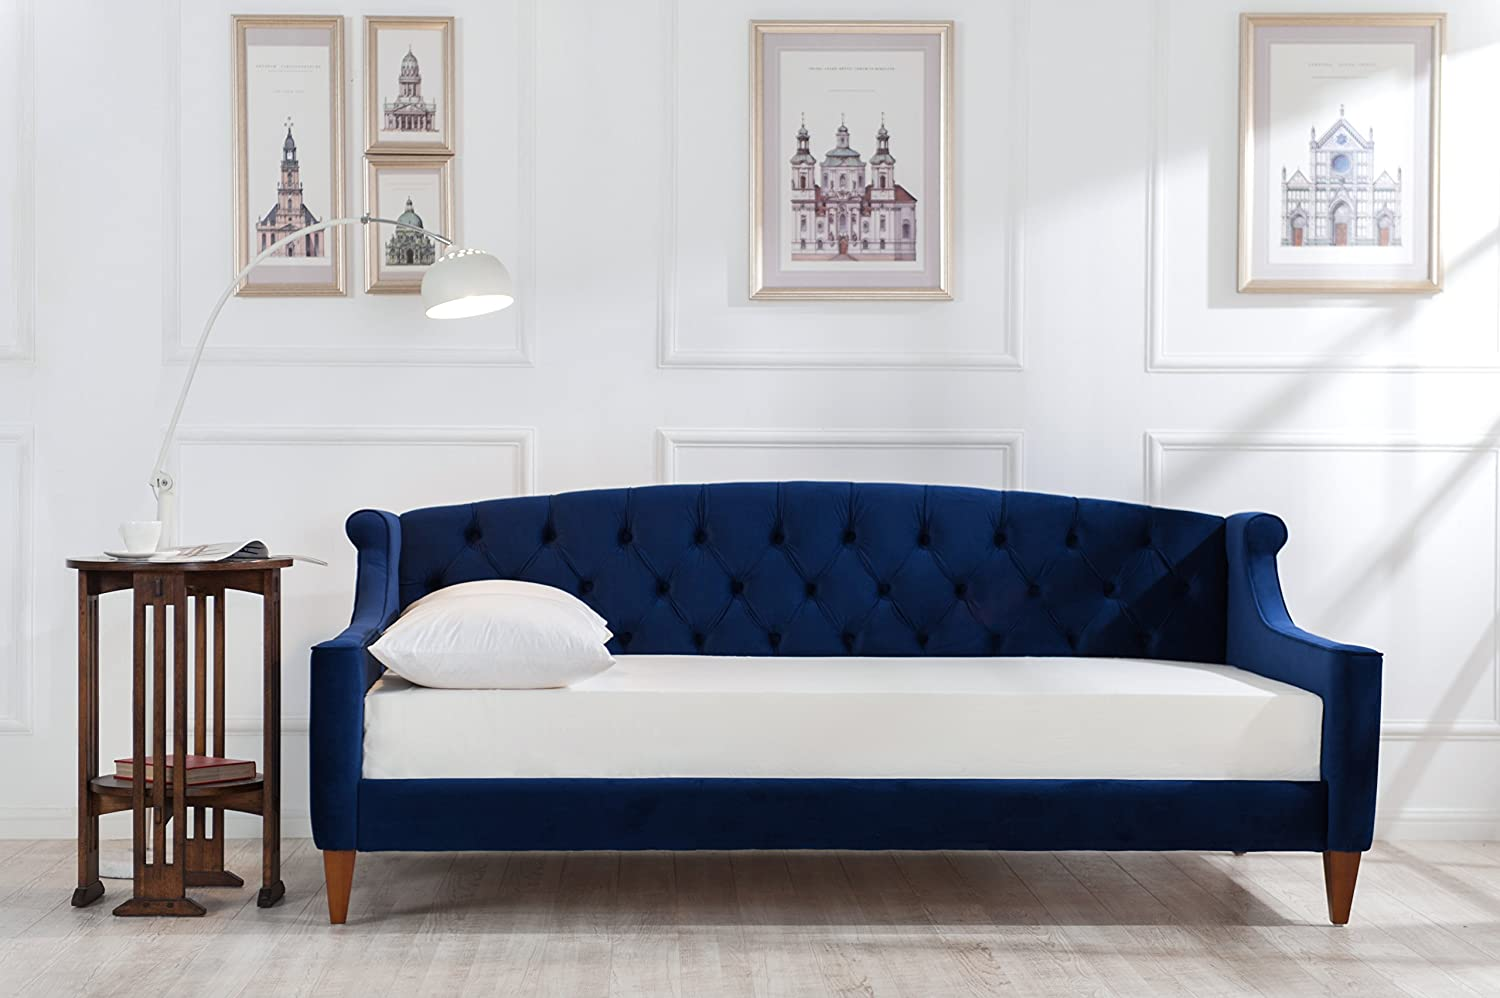 Jennifer Taylor Home, Sofa Bed, Navy Blue, Velvet, Hand Tufted, Hand  Painted and Hand Rub Finished Wooden Legs